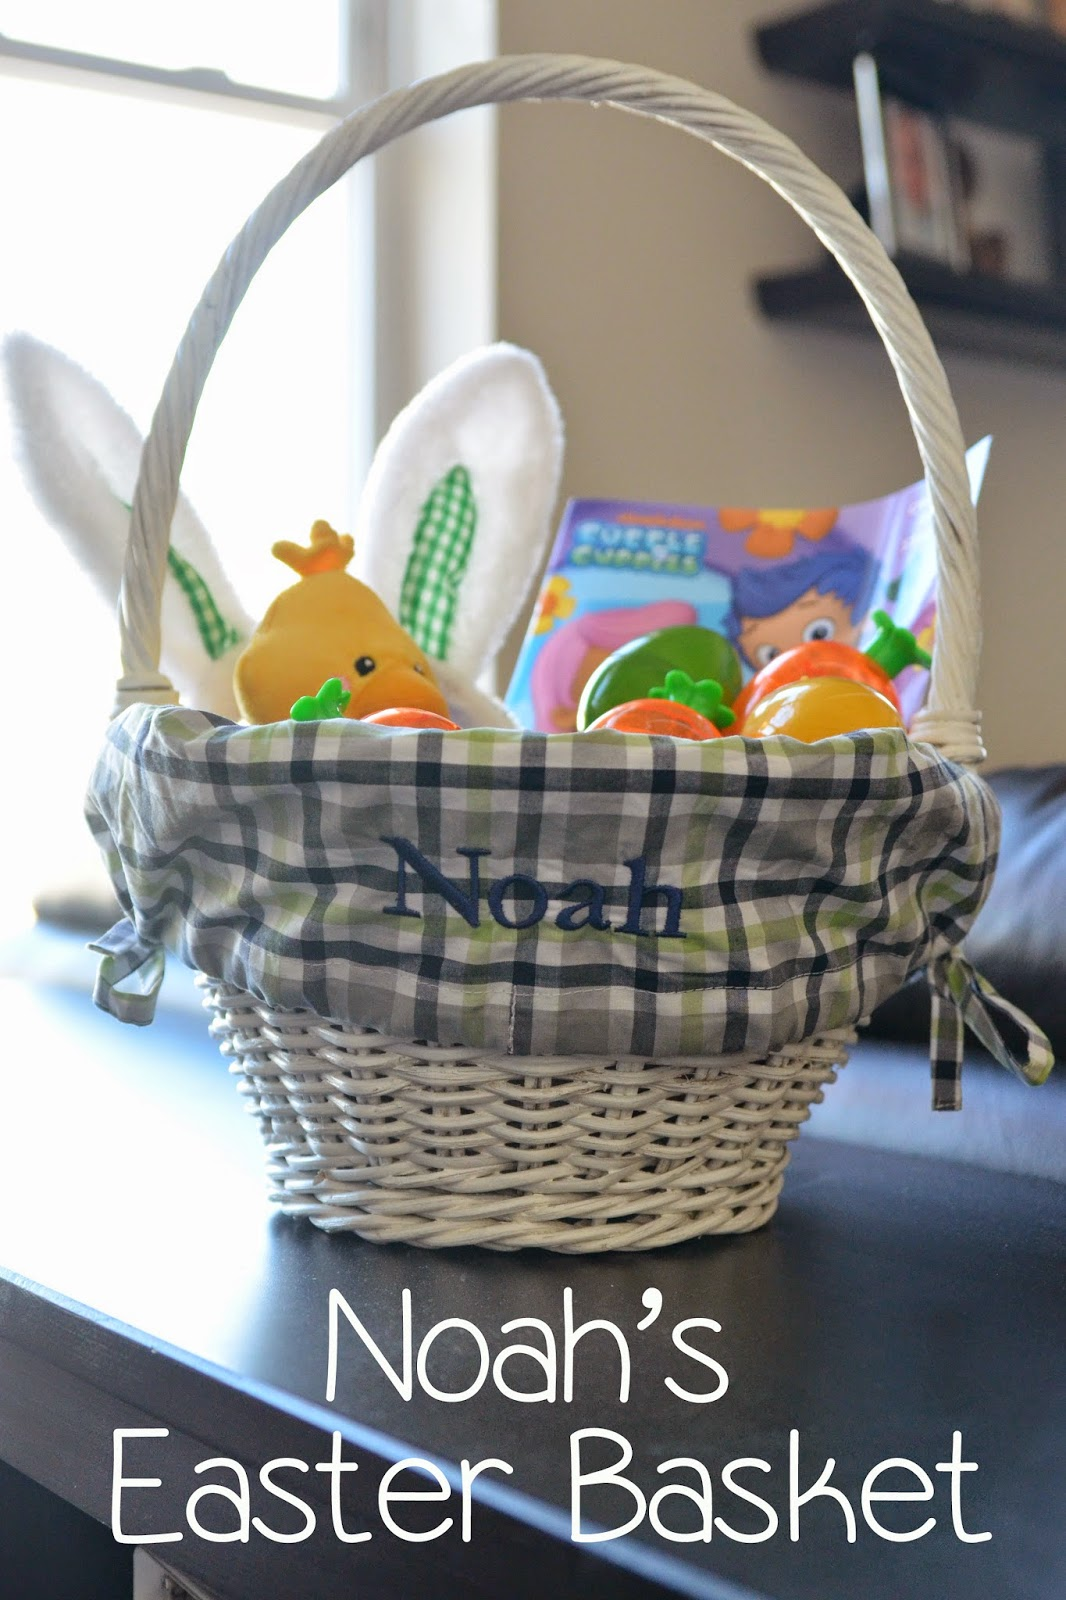 The adventure starts here noahs easter basket noahs easter basket negle Images